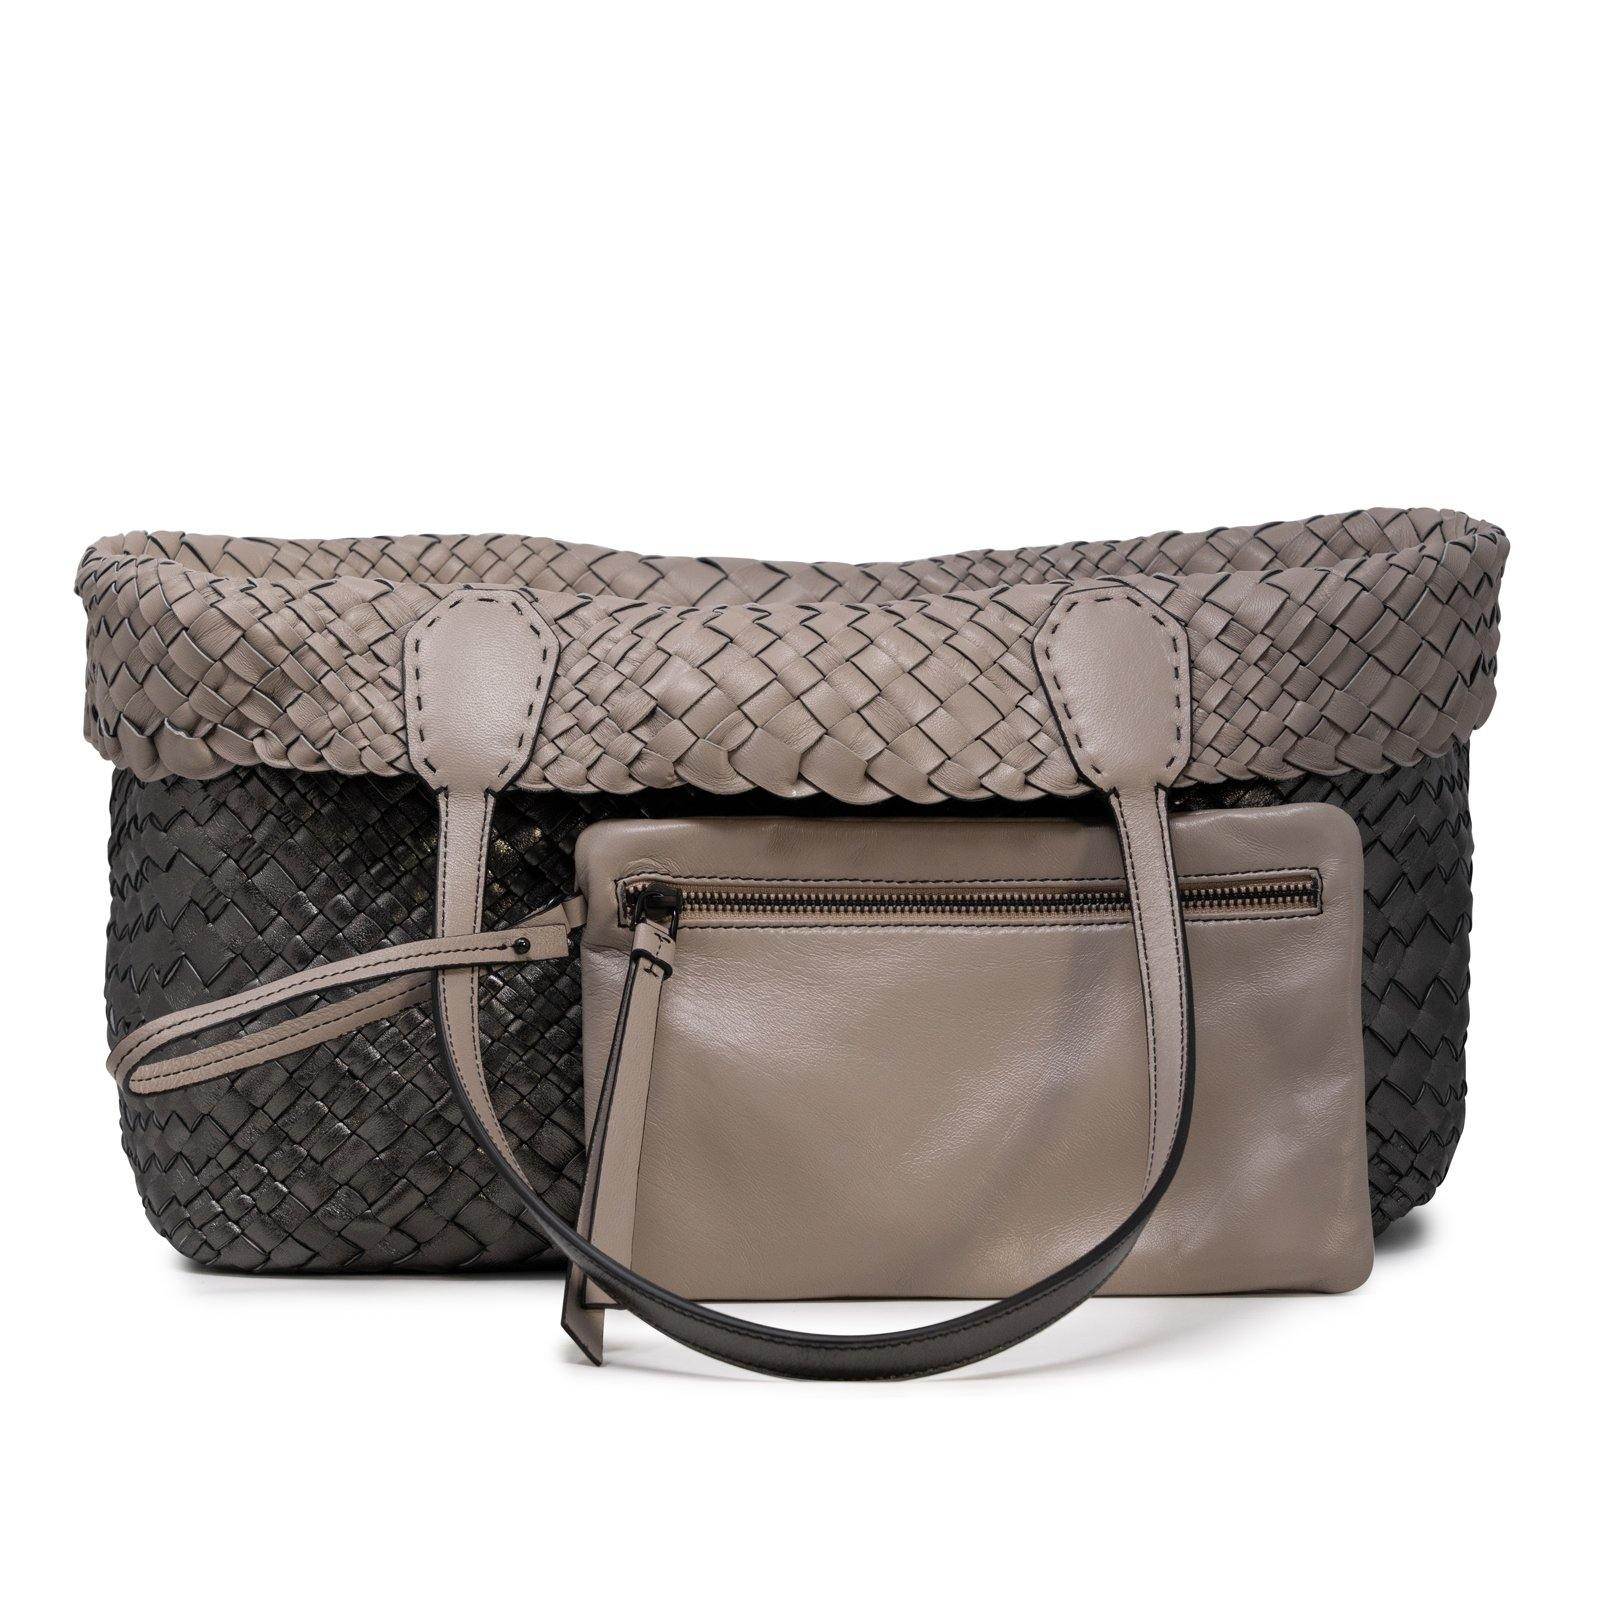 Women Leather Intreccio Optical Reversible Bag in Putter and Taupe